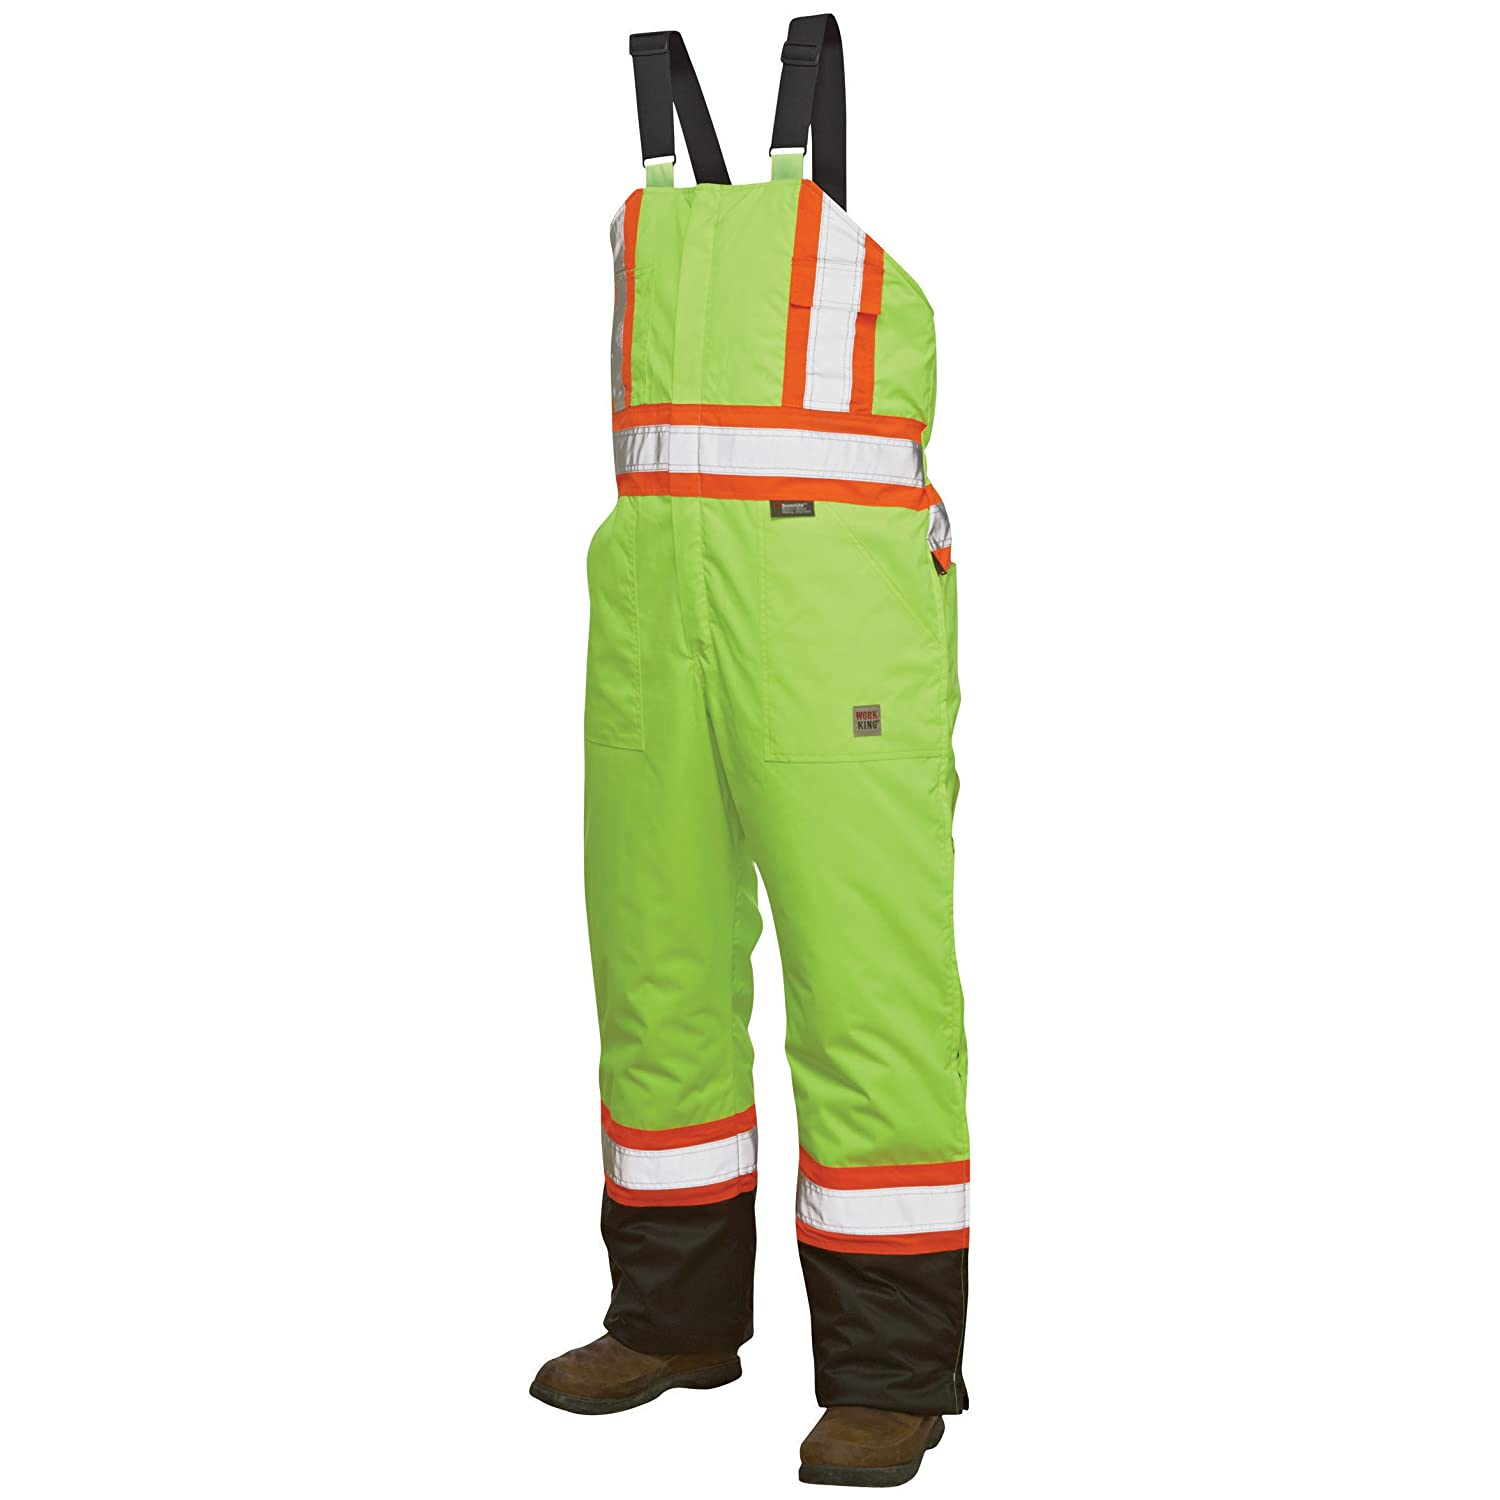 Work King Safety Mens Hi Vis Insulated Safety Overall Work King Safety Men' s Work Apparel S79801